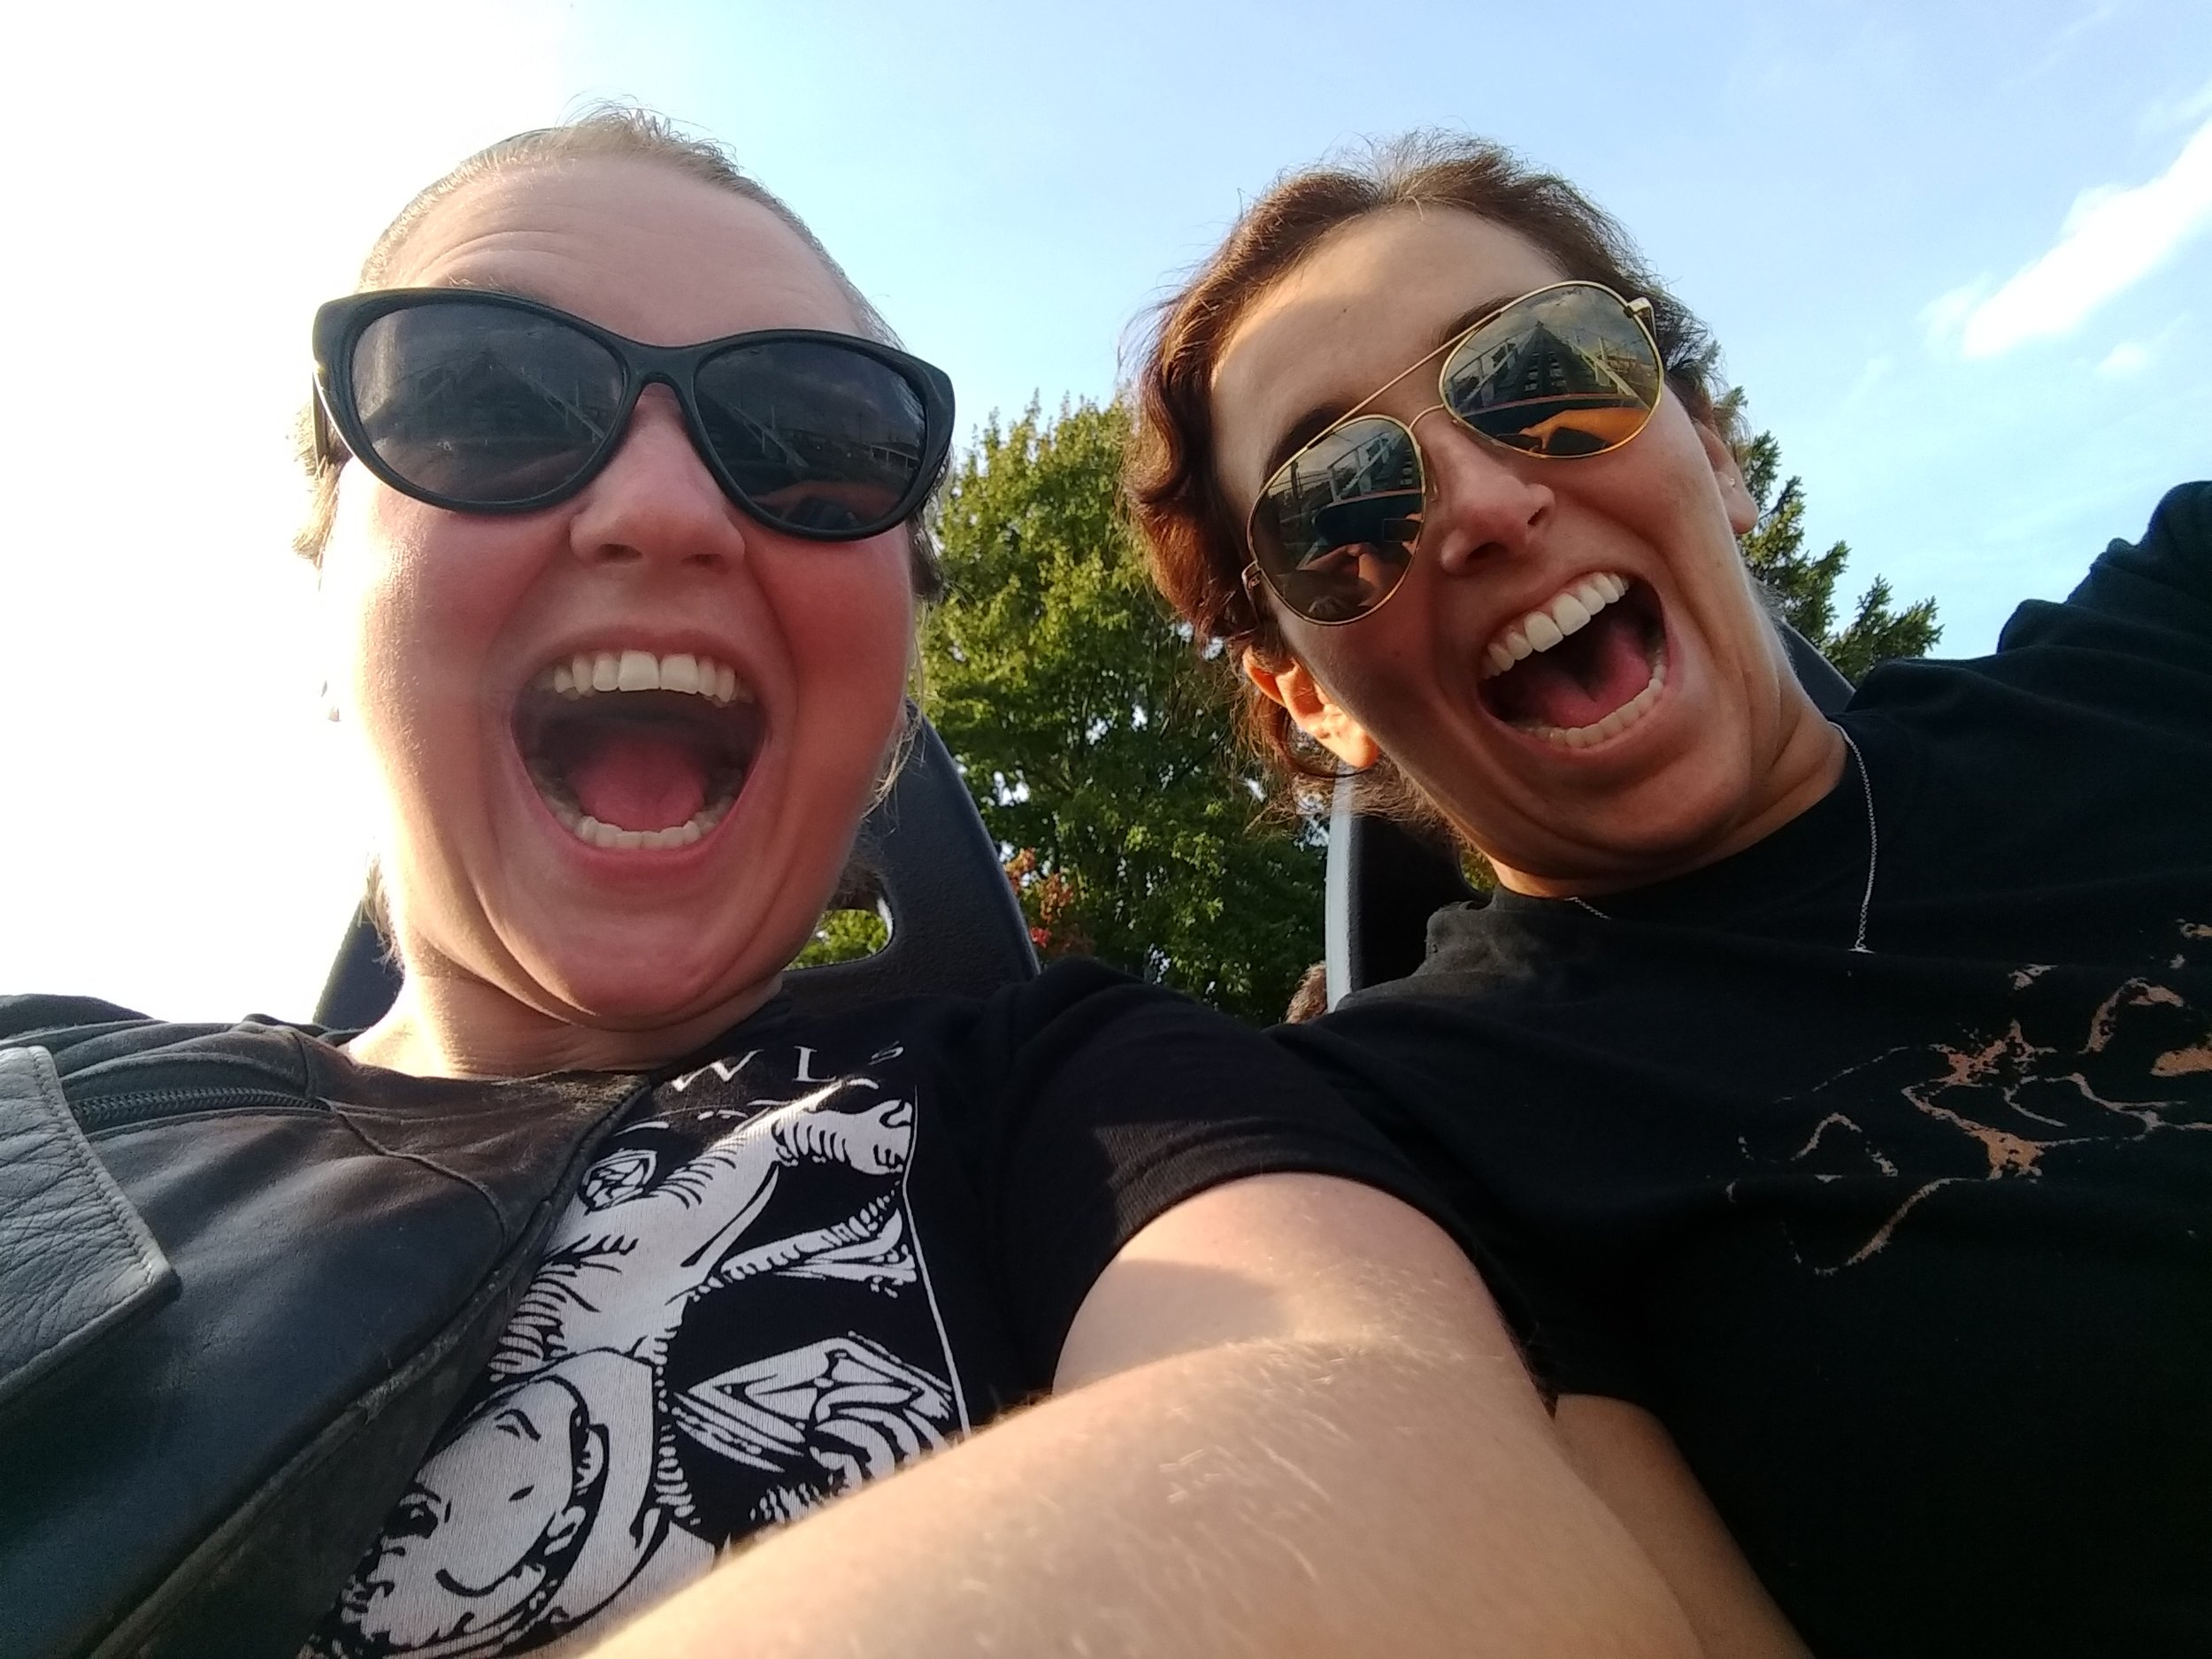 My friend Natasha and I on the front row of Blue Streak (my favorite coaster in Cedar Point).